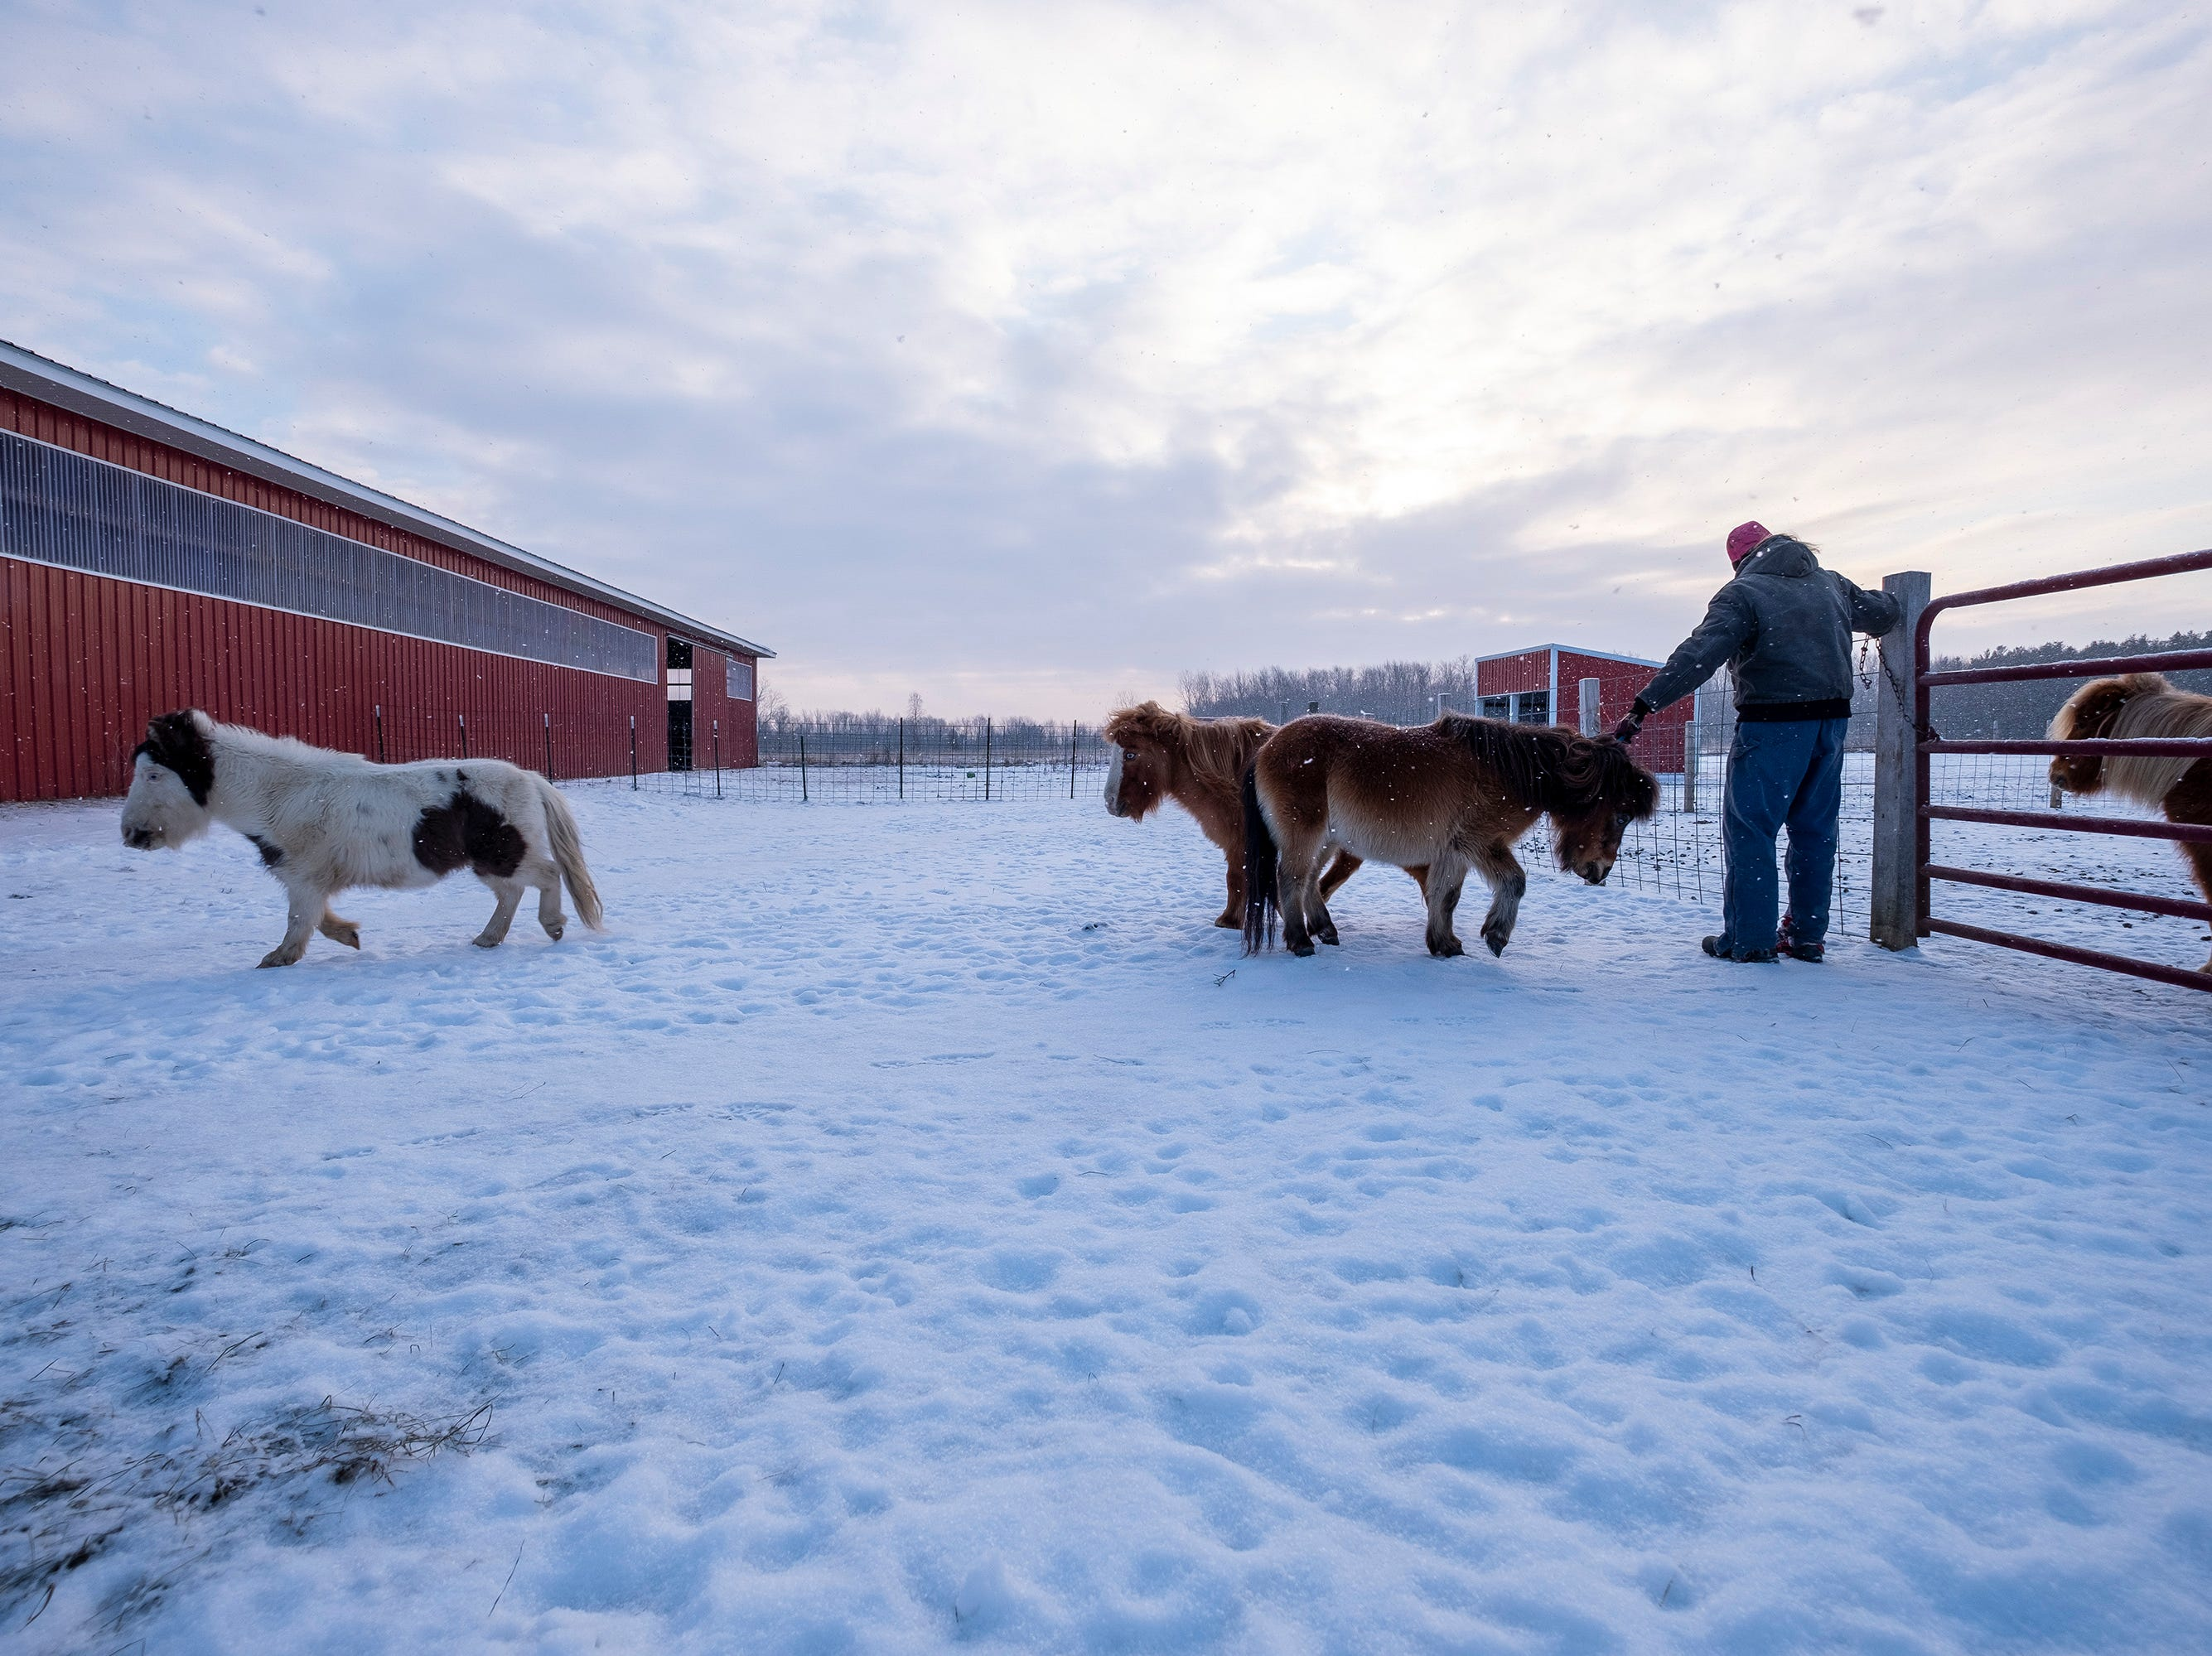 "As the sun begins to break through early-morning clouds, Tammie Miller, owner of Saving Grace Miniature Horse Rescue in Emmett, releases a group of mini horses to go into the barn for their morning feeding. Miller first got into miniature horses in 2002 after being injured in a car accident in 1999 that left her unable to ride. She says she discovered miniature horses and was hooked. In 2014, the rescue organization she was working for closed down and she decided to start her own. ""I just love the miniature horses,"" said Miller. ""They make me happy."""